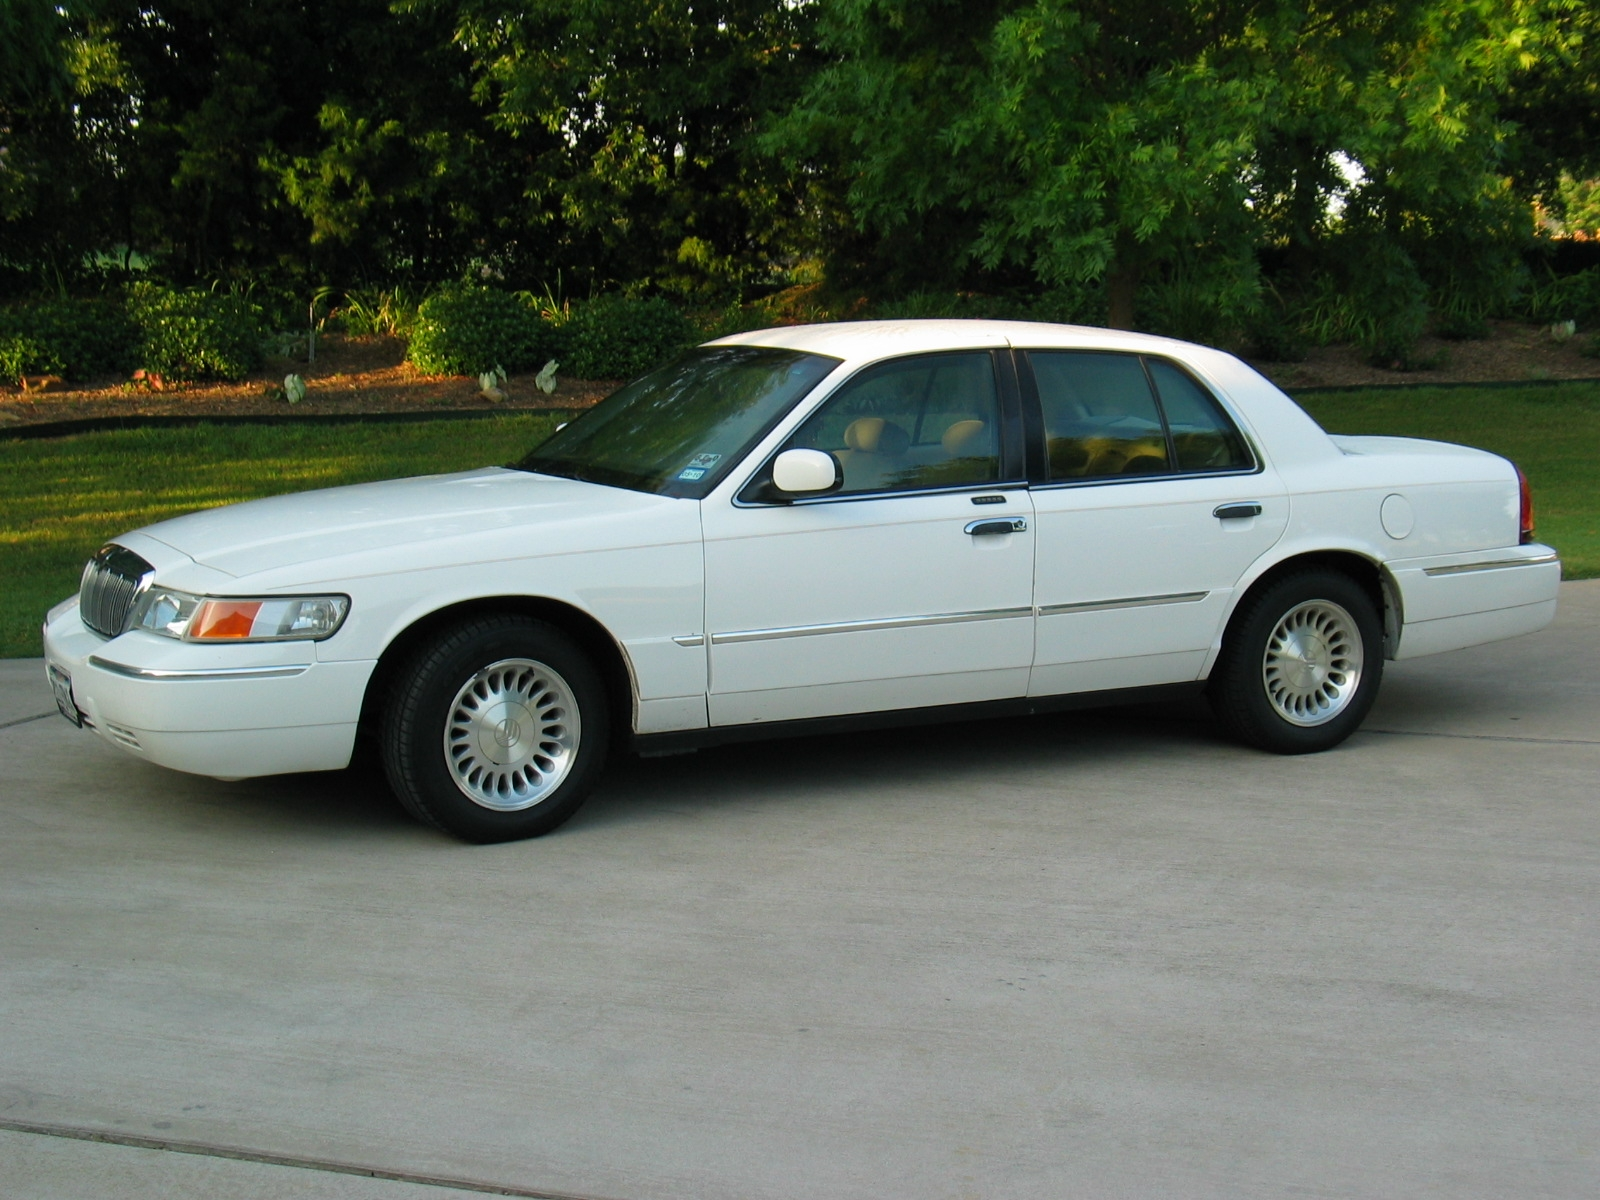 2001 Mercury Grand Marquis #17